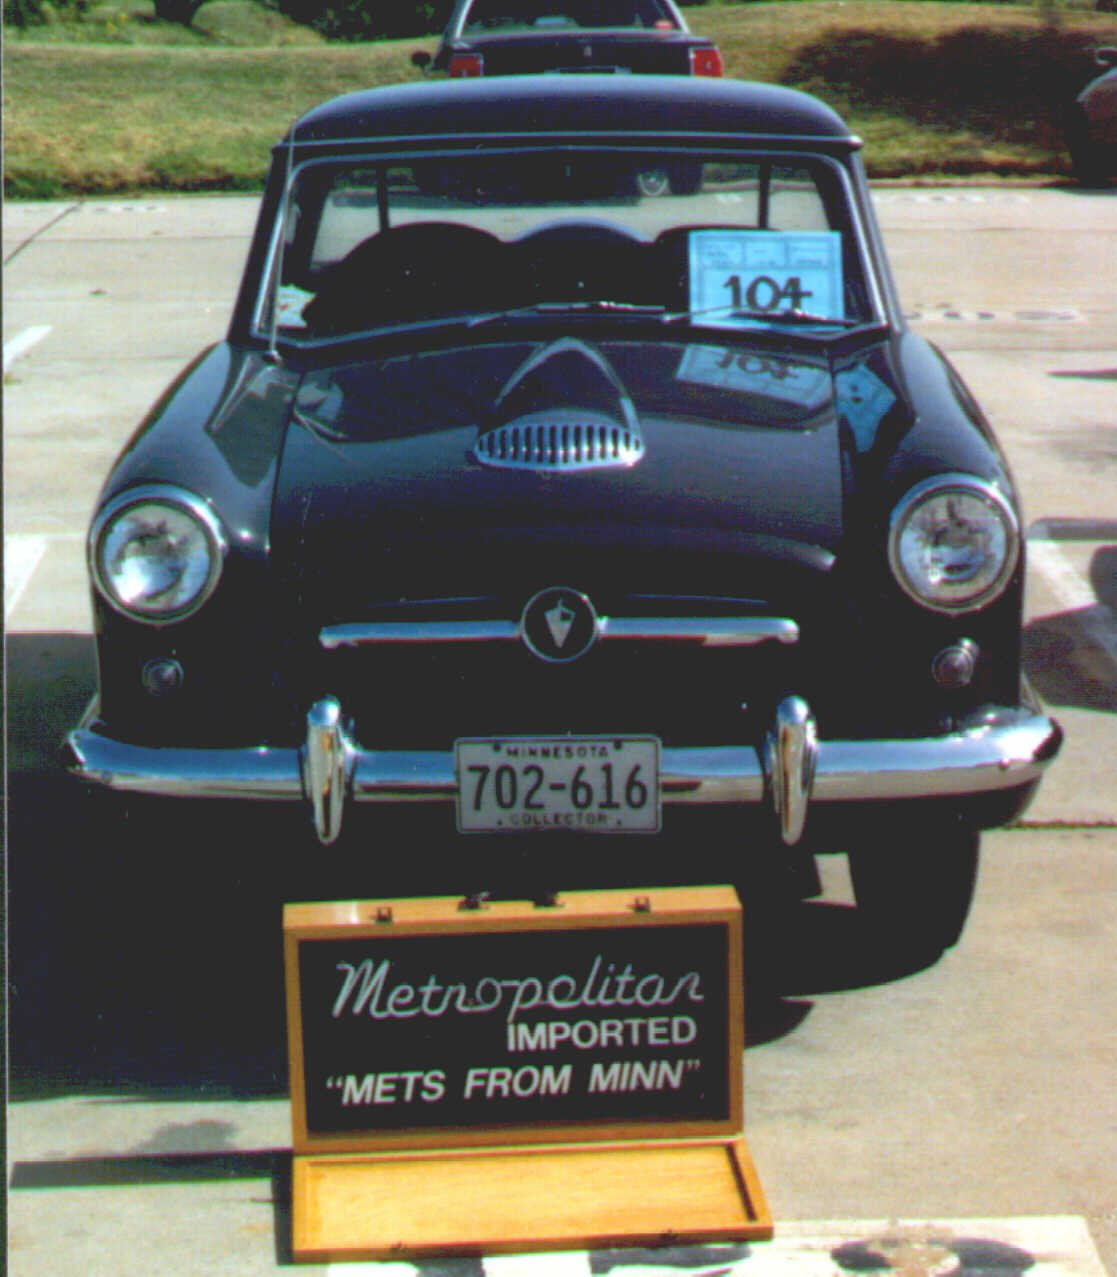 Jrc Metropolitans And Personal Stuff Starting Circuit Diagram For The 1940 52 Buick All Models Except Dynaflow My 54 Hudson Da Poupon At Dallas Mocna Meet In 92 Gotta First Place